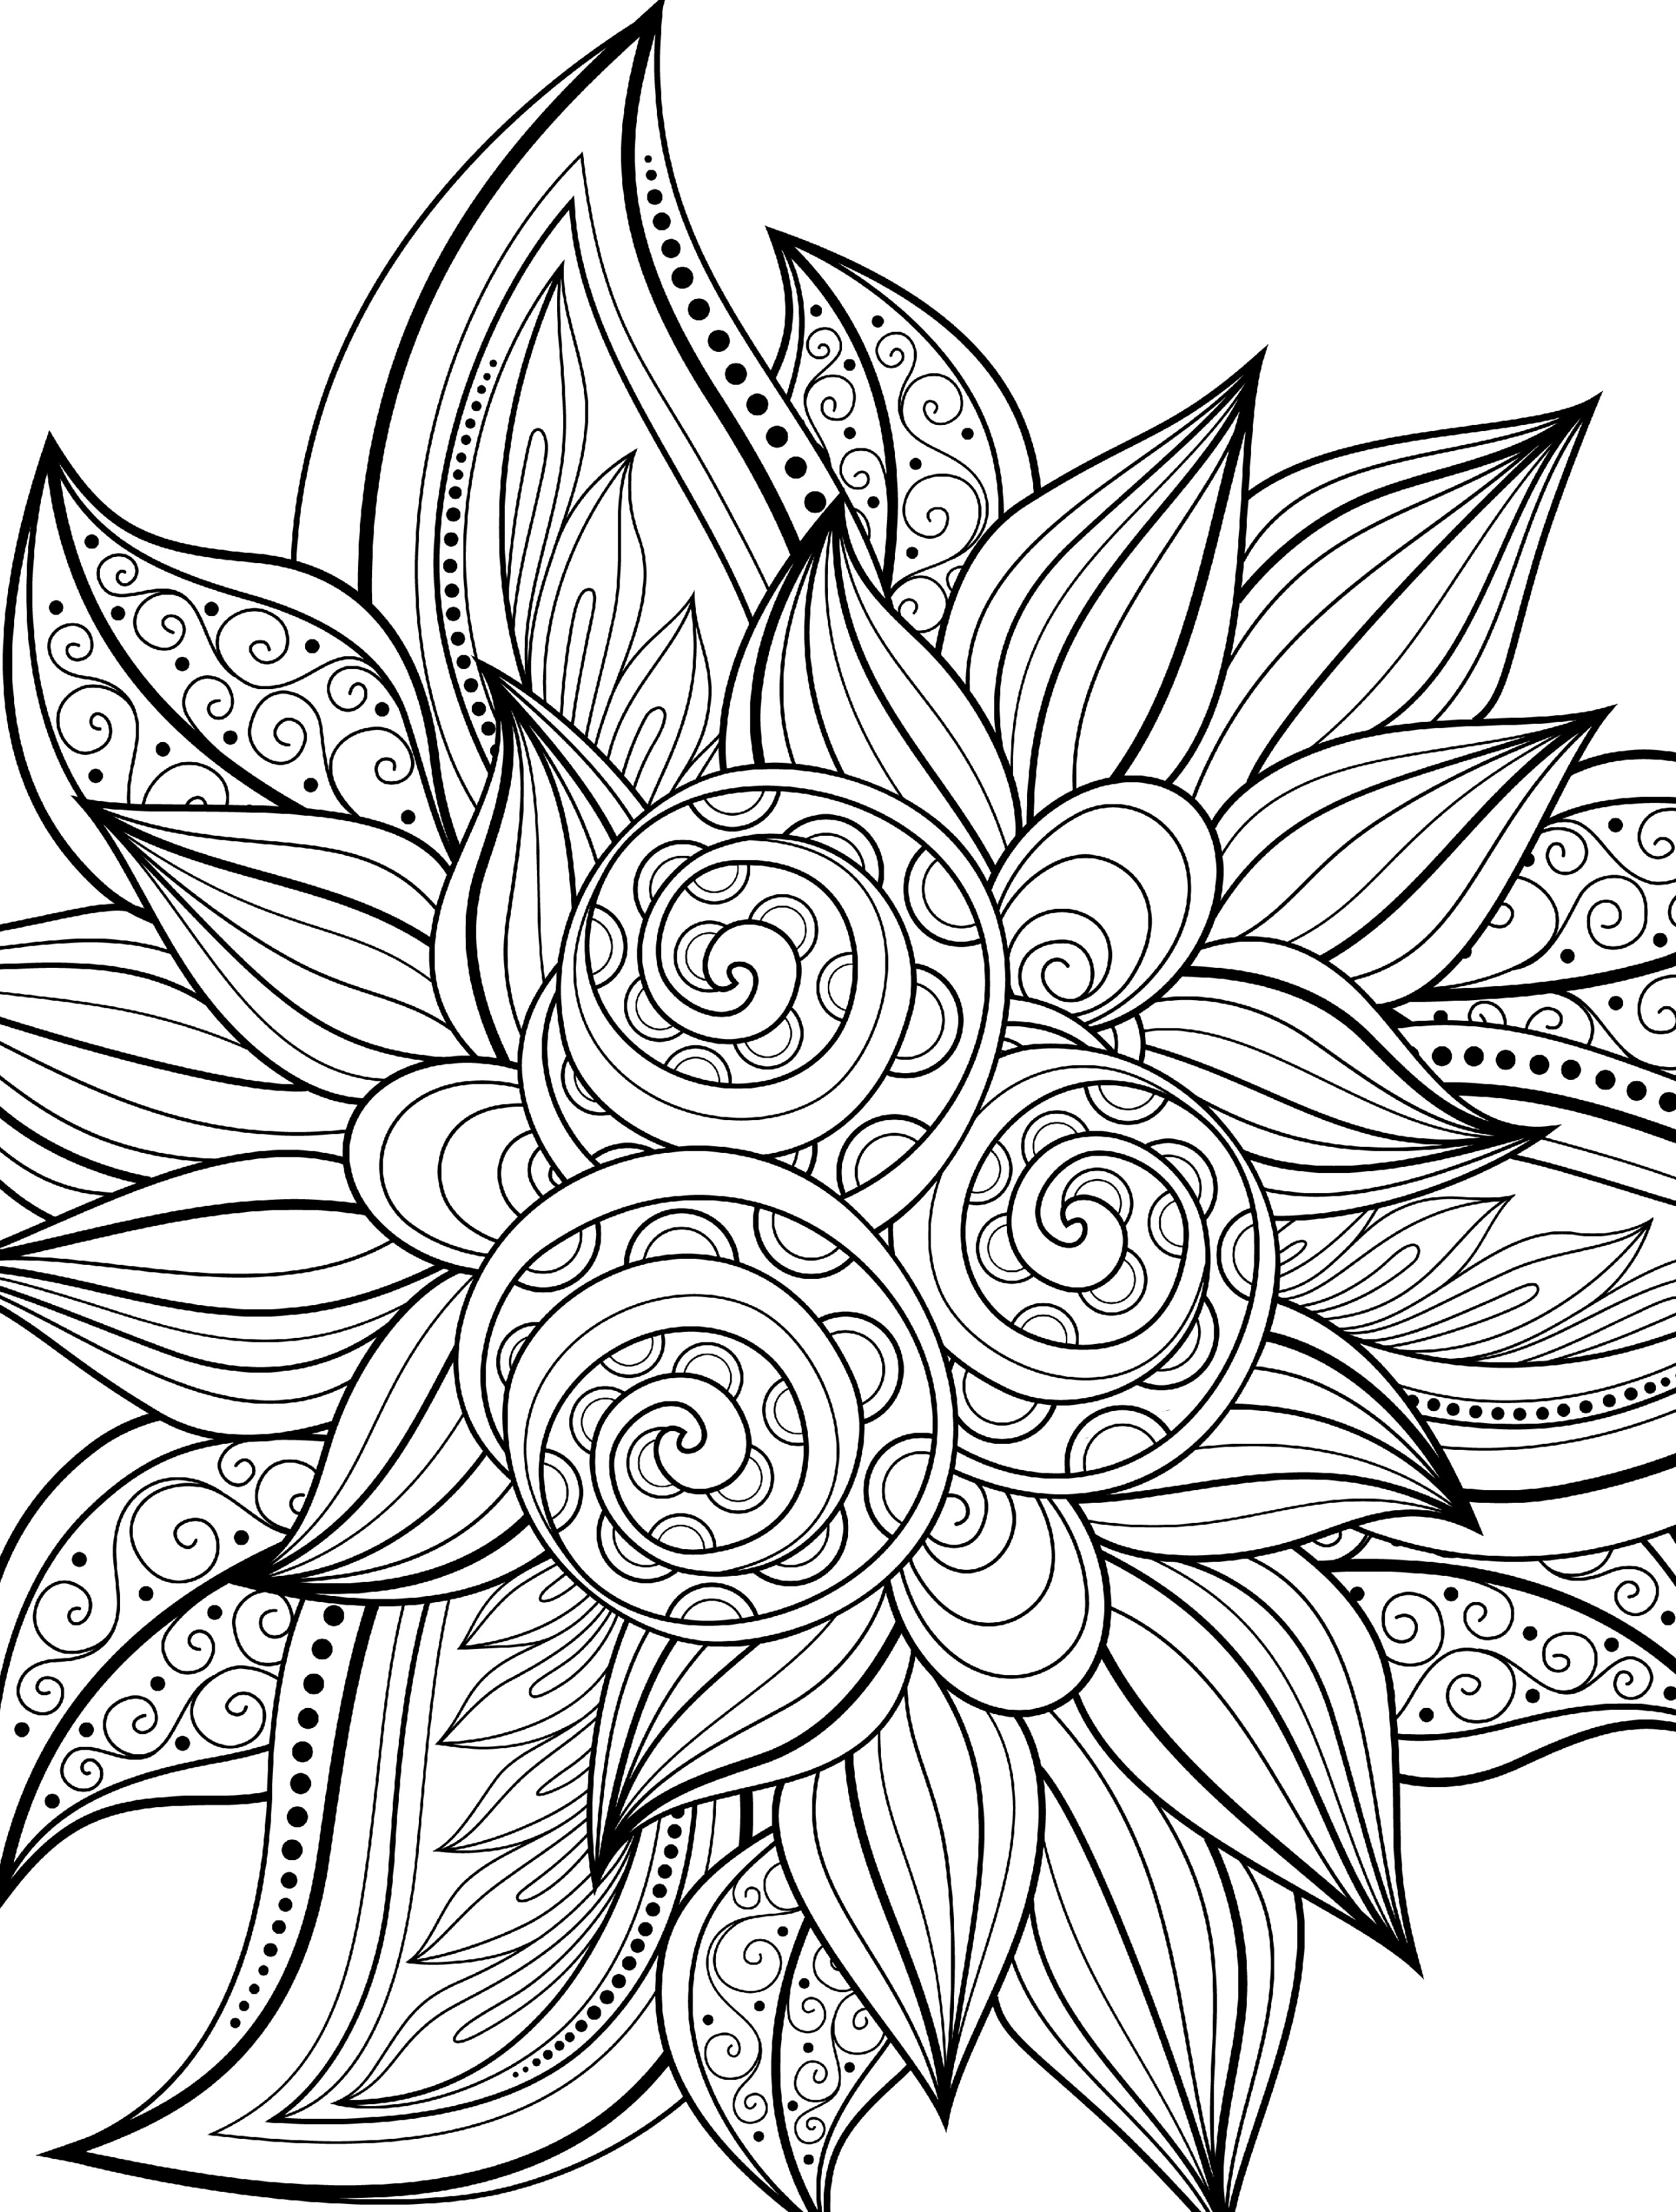 Free Adult Christmas Coloring Pages